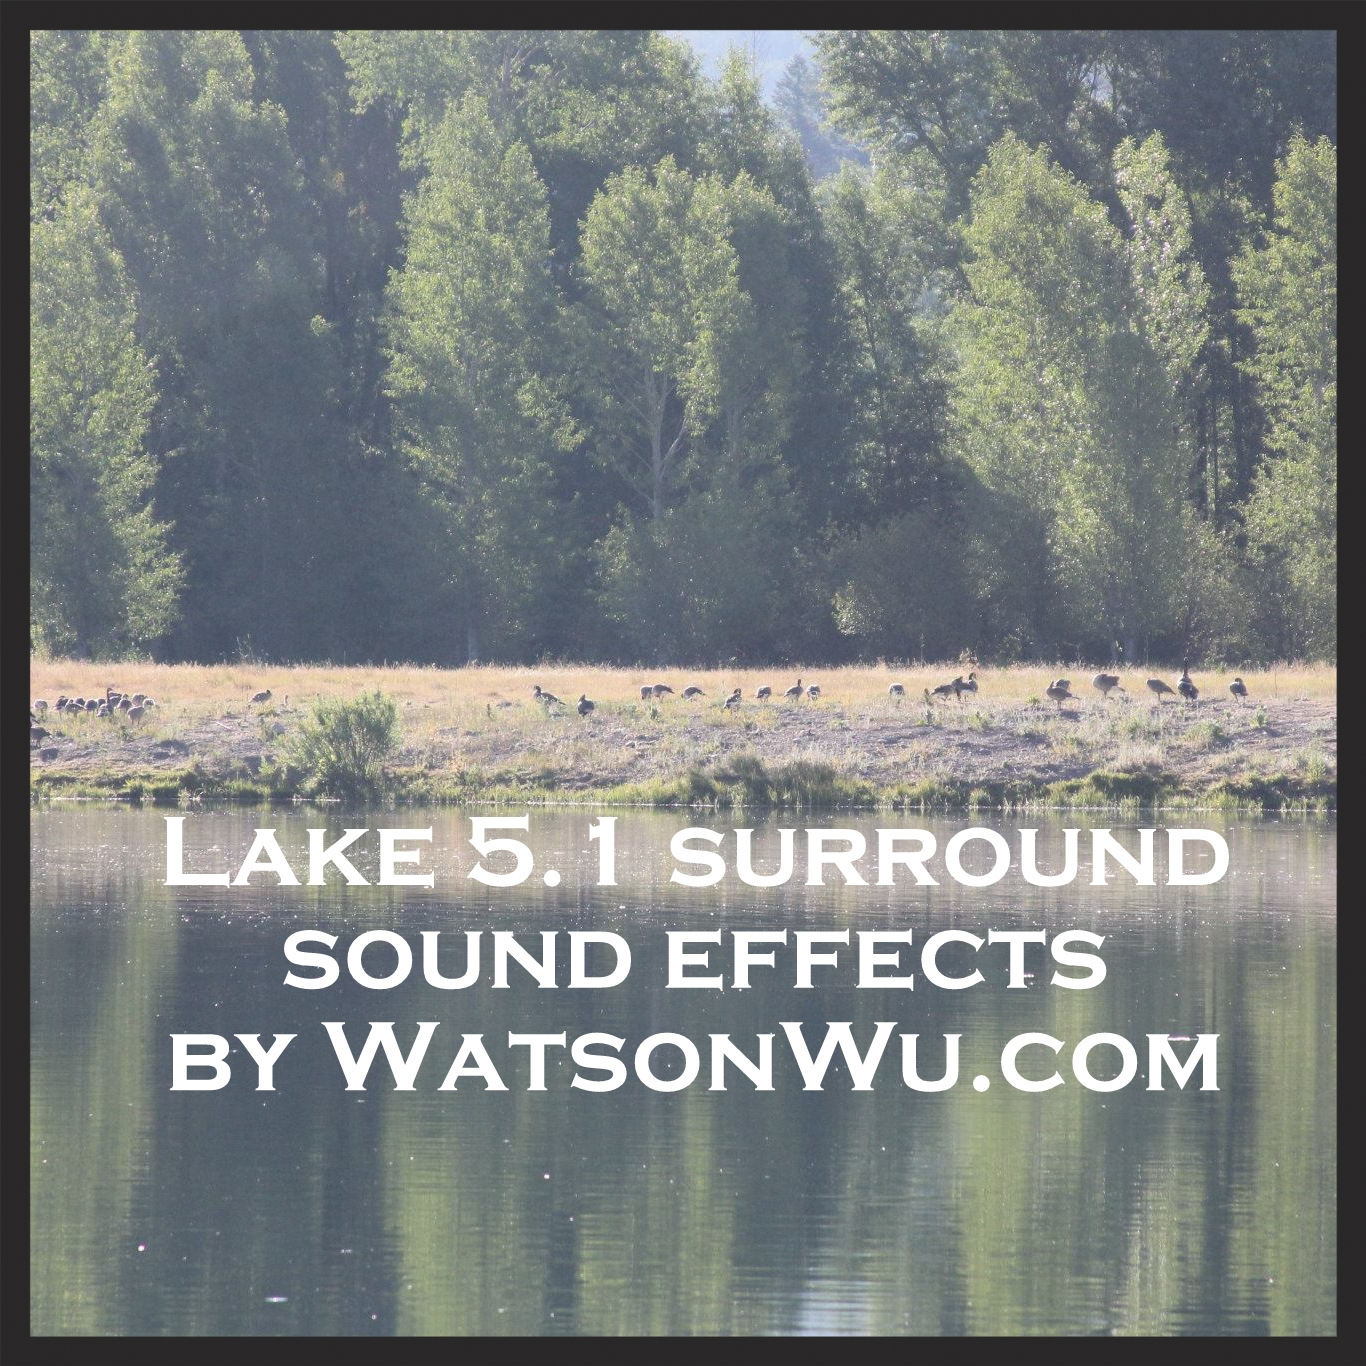 Watson Wu - Lake ambience 5.1 surround sound effects library.jpg